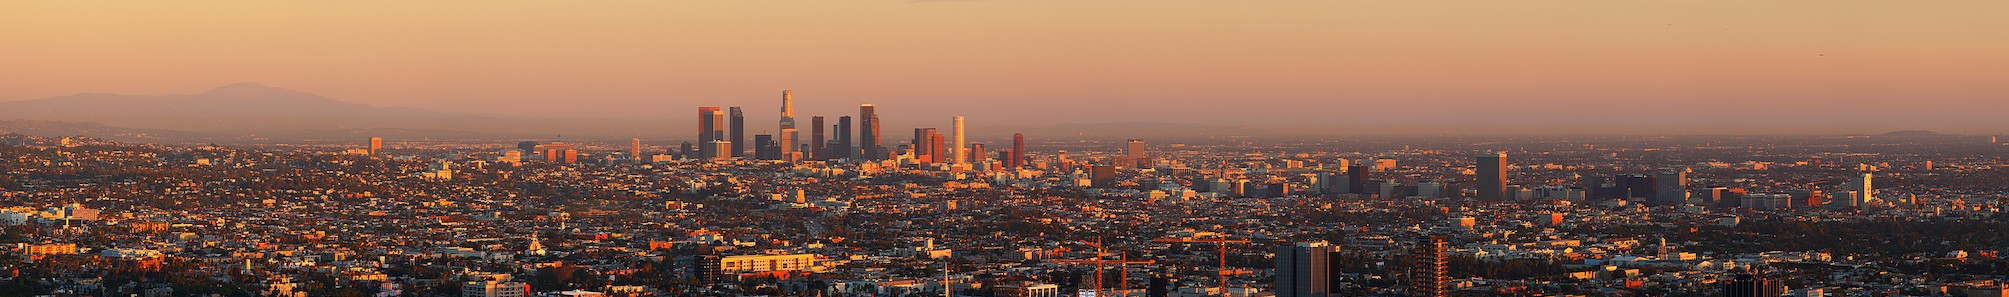 Los_angeles_mountains_to_ocean_pano